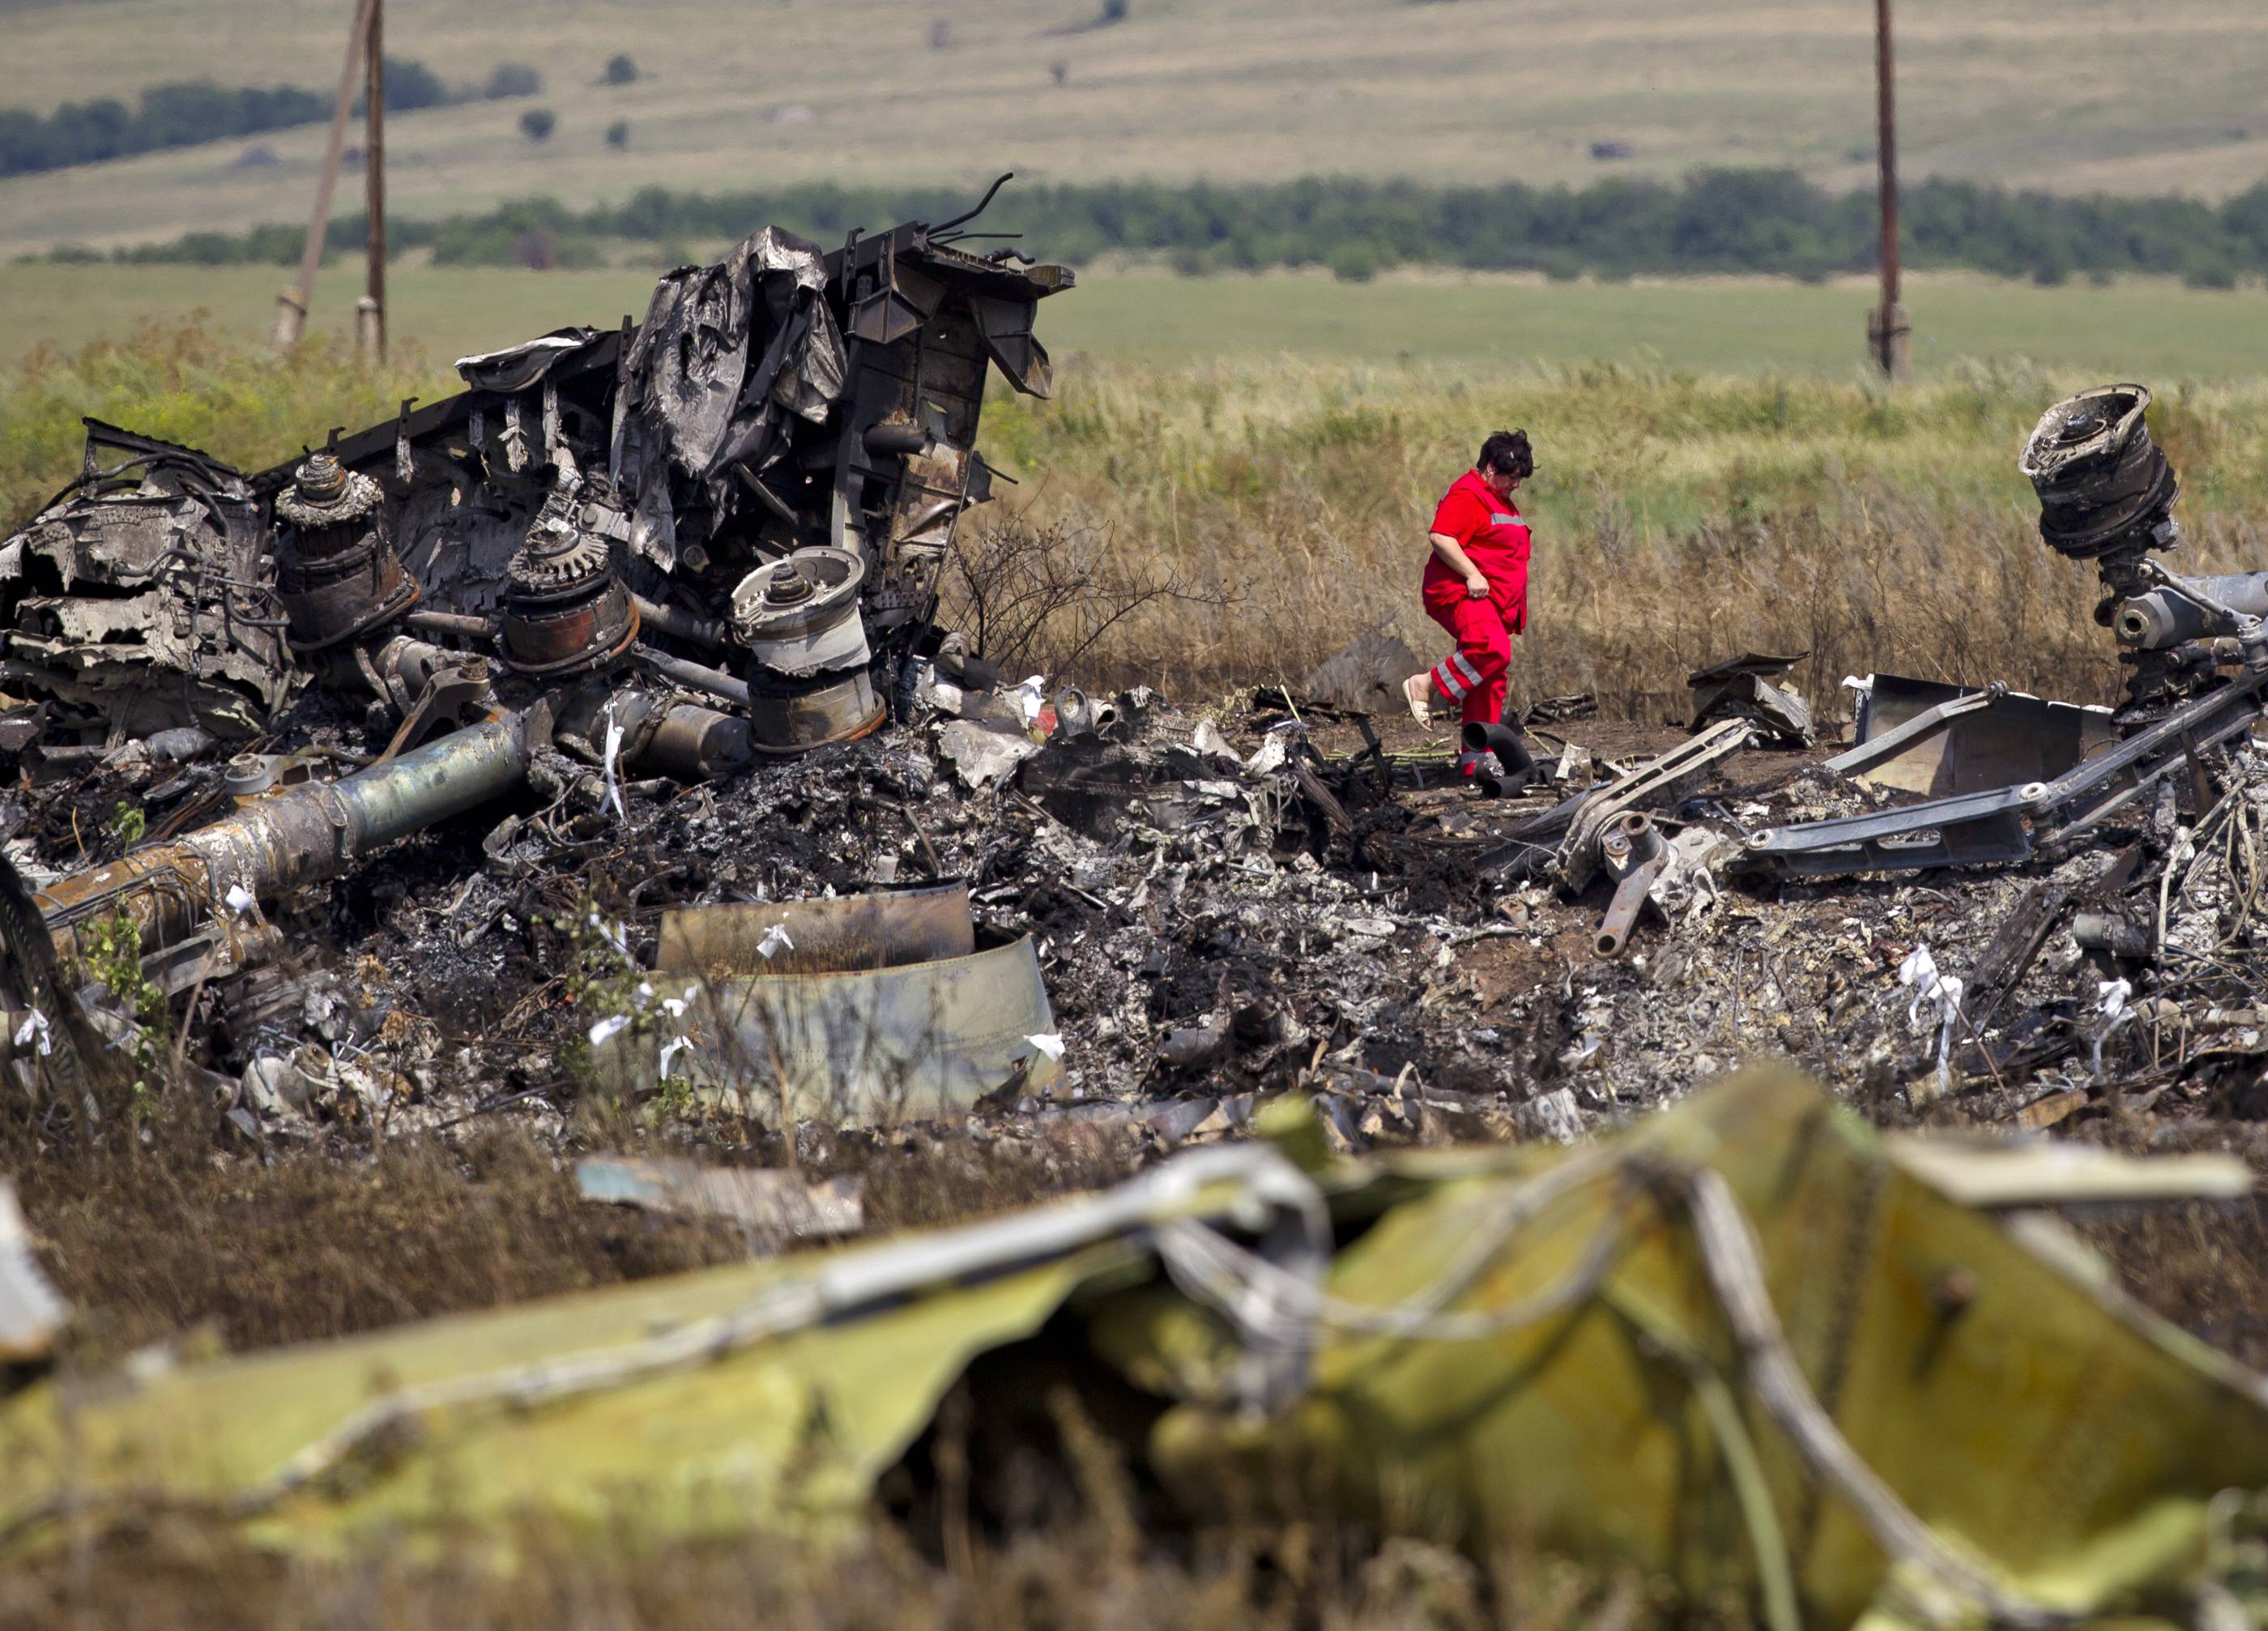 U.S. outlines case against Russia on downed plane